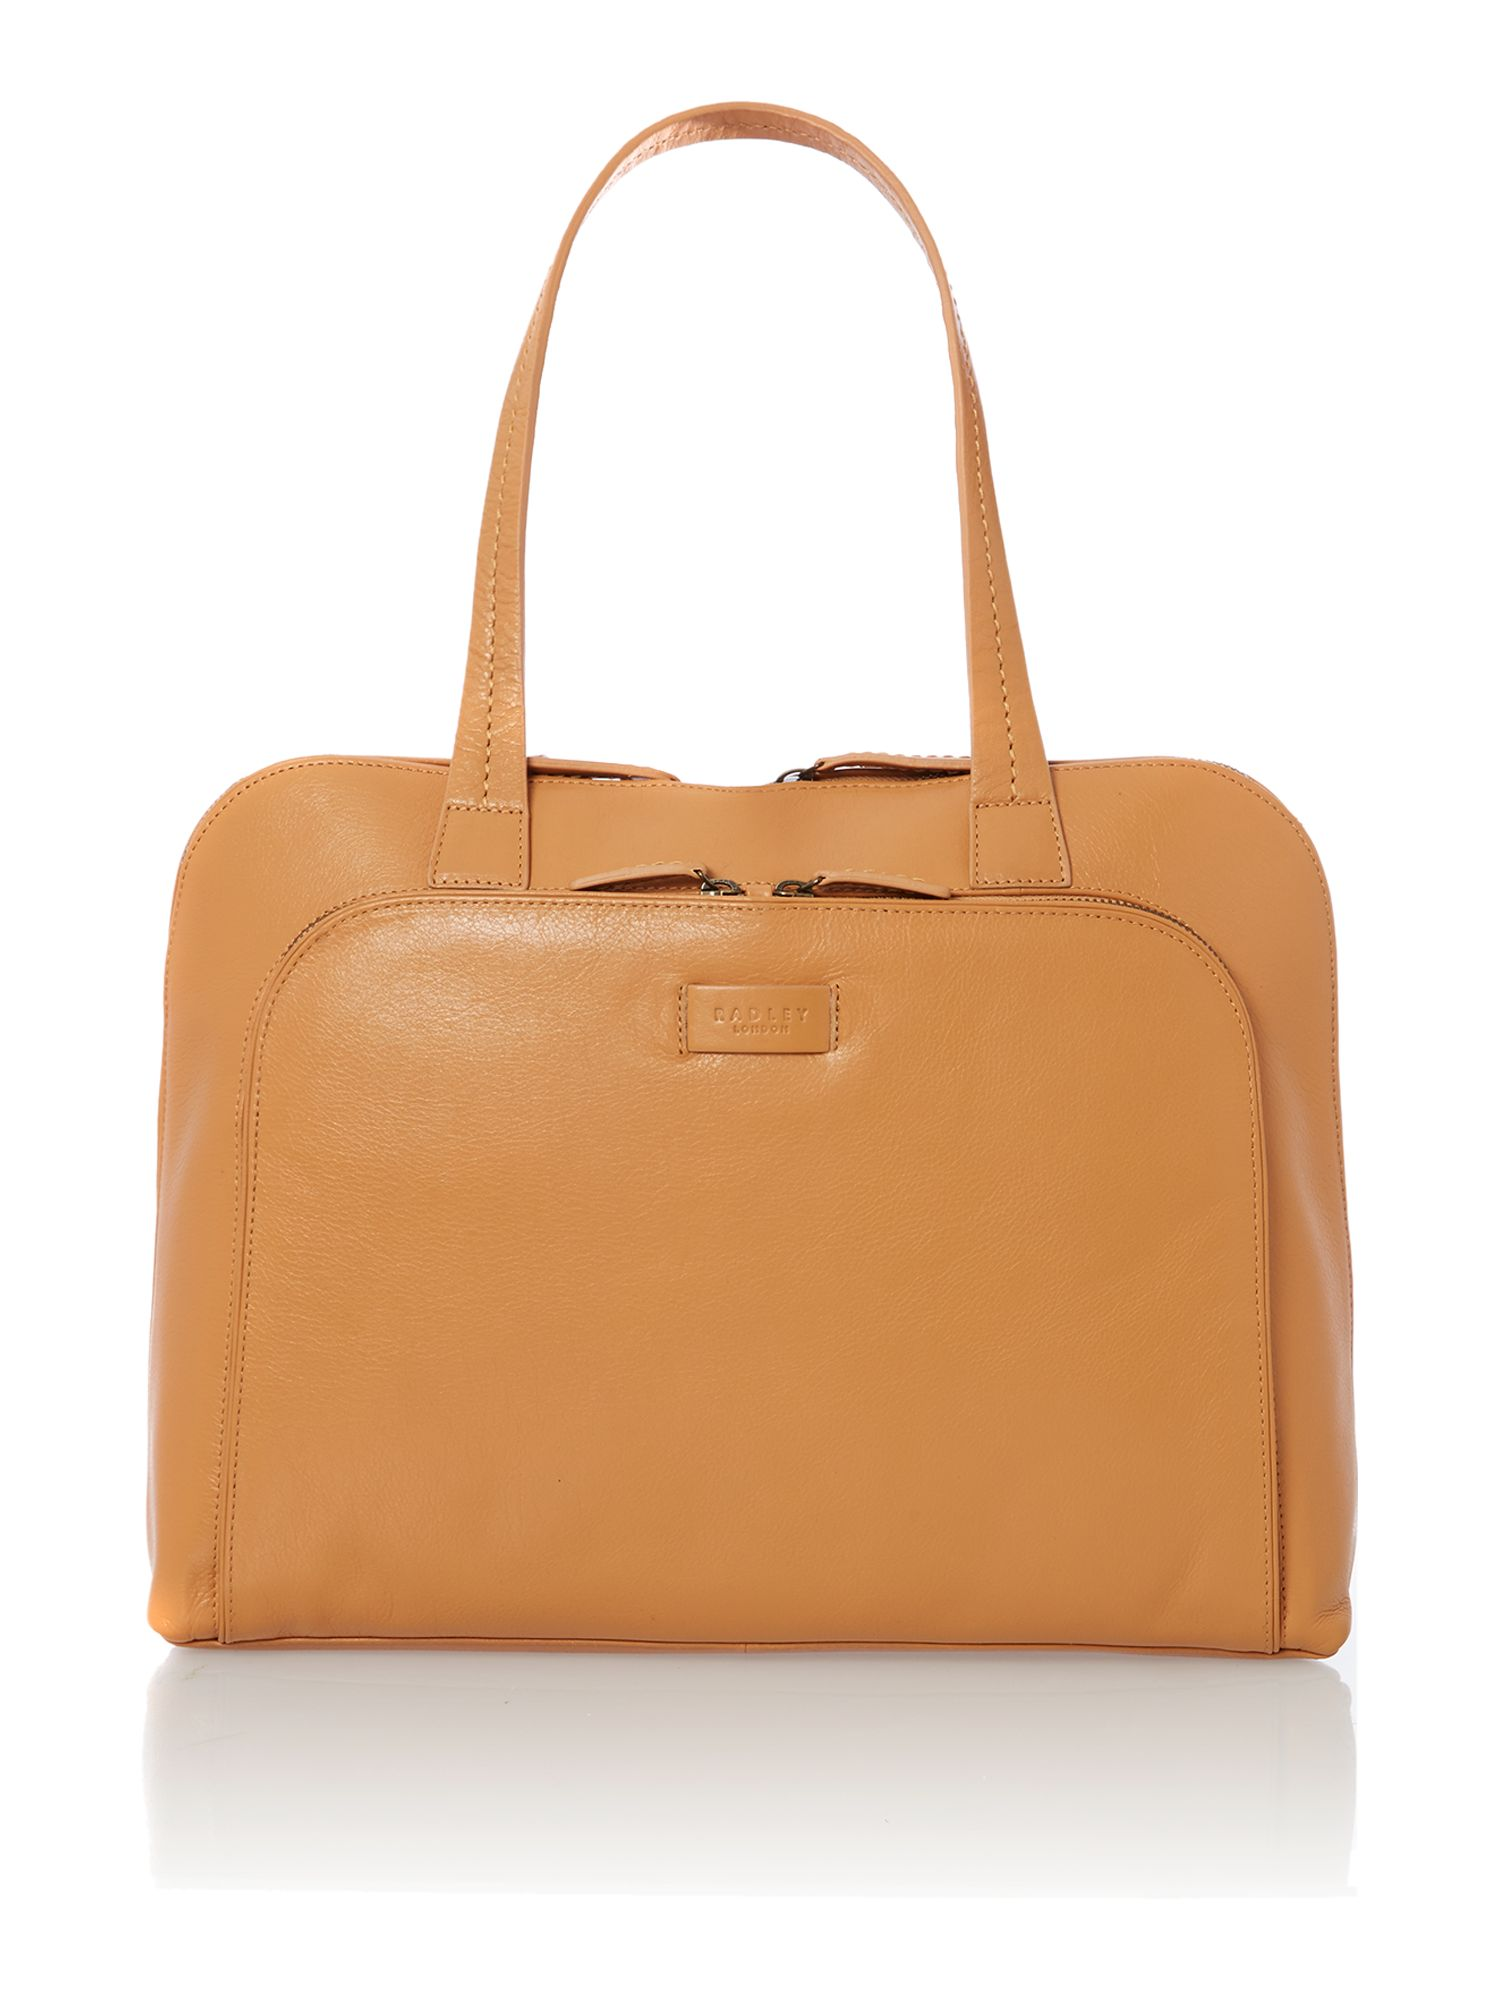 Pippen tan large leather tote bag